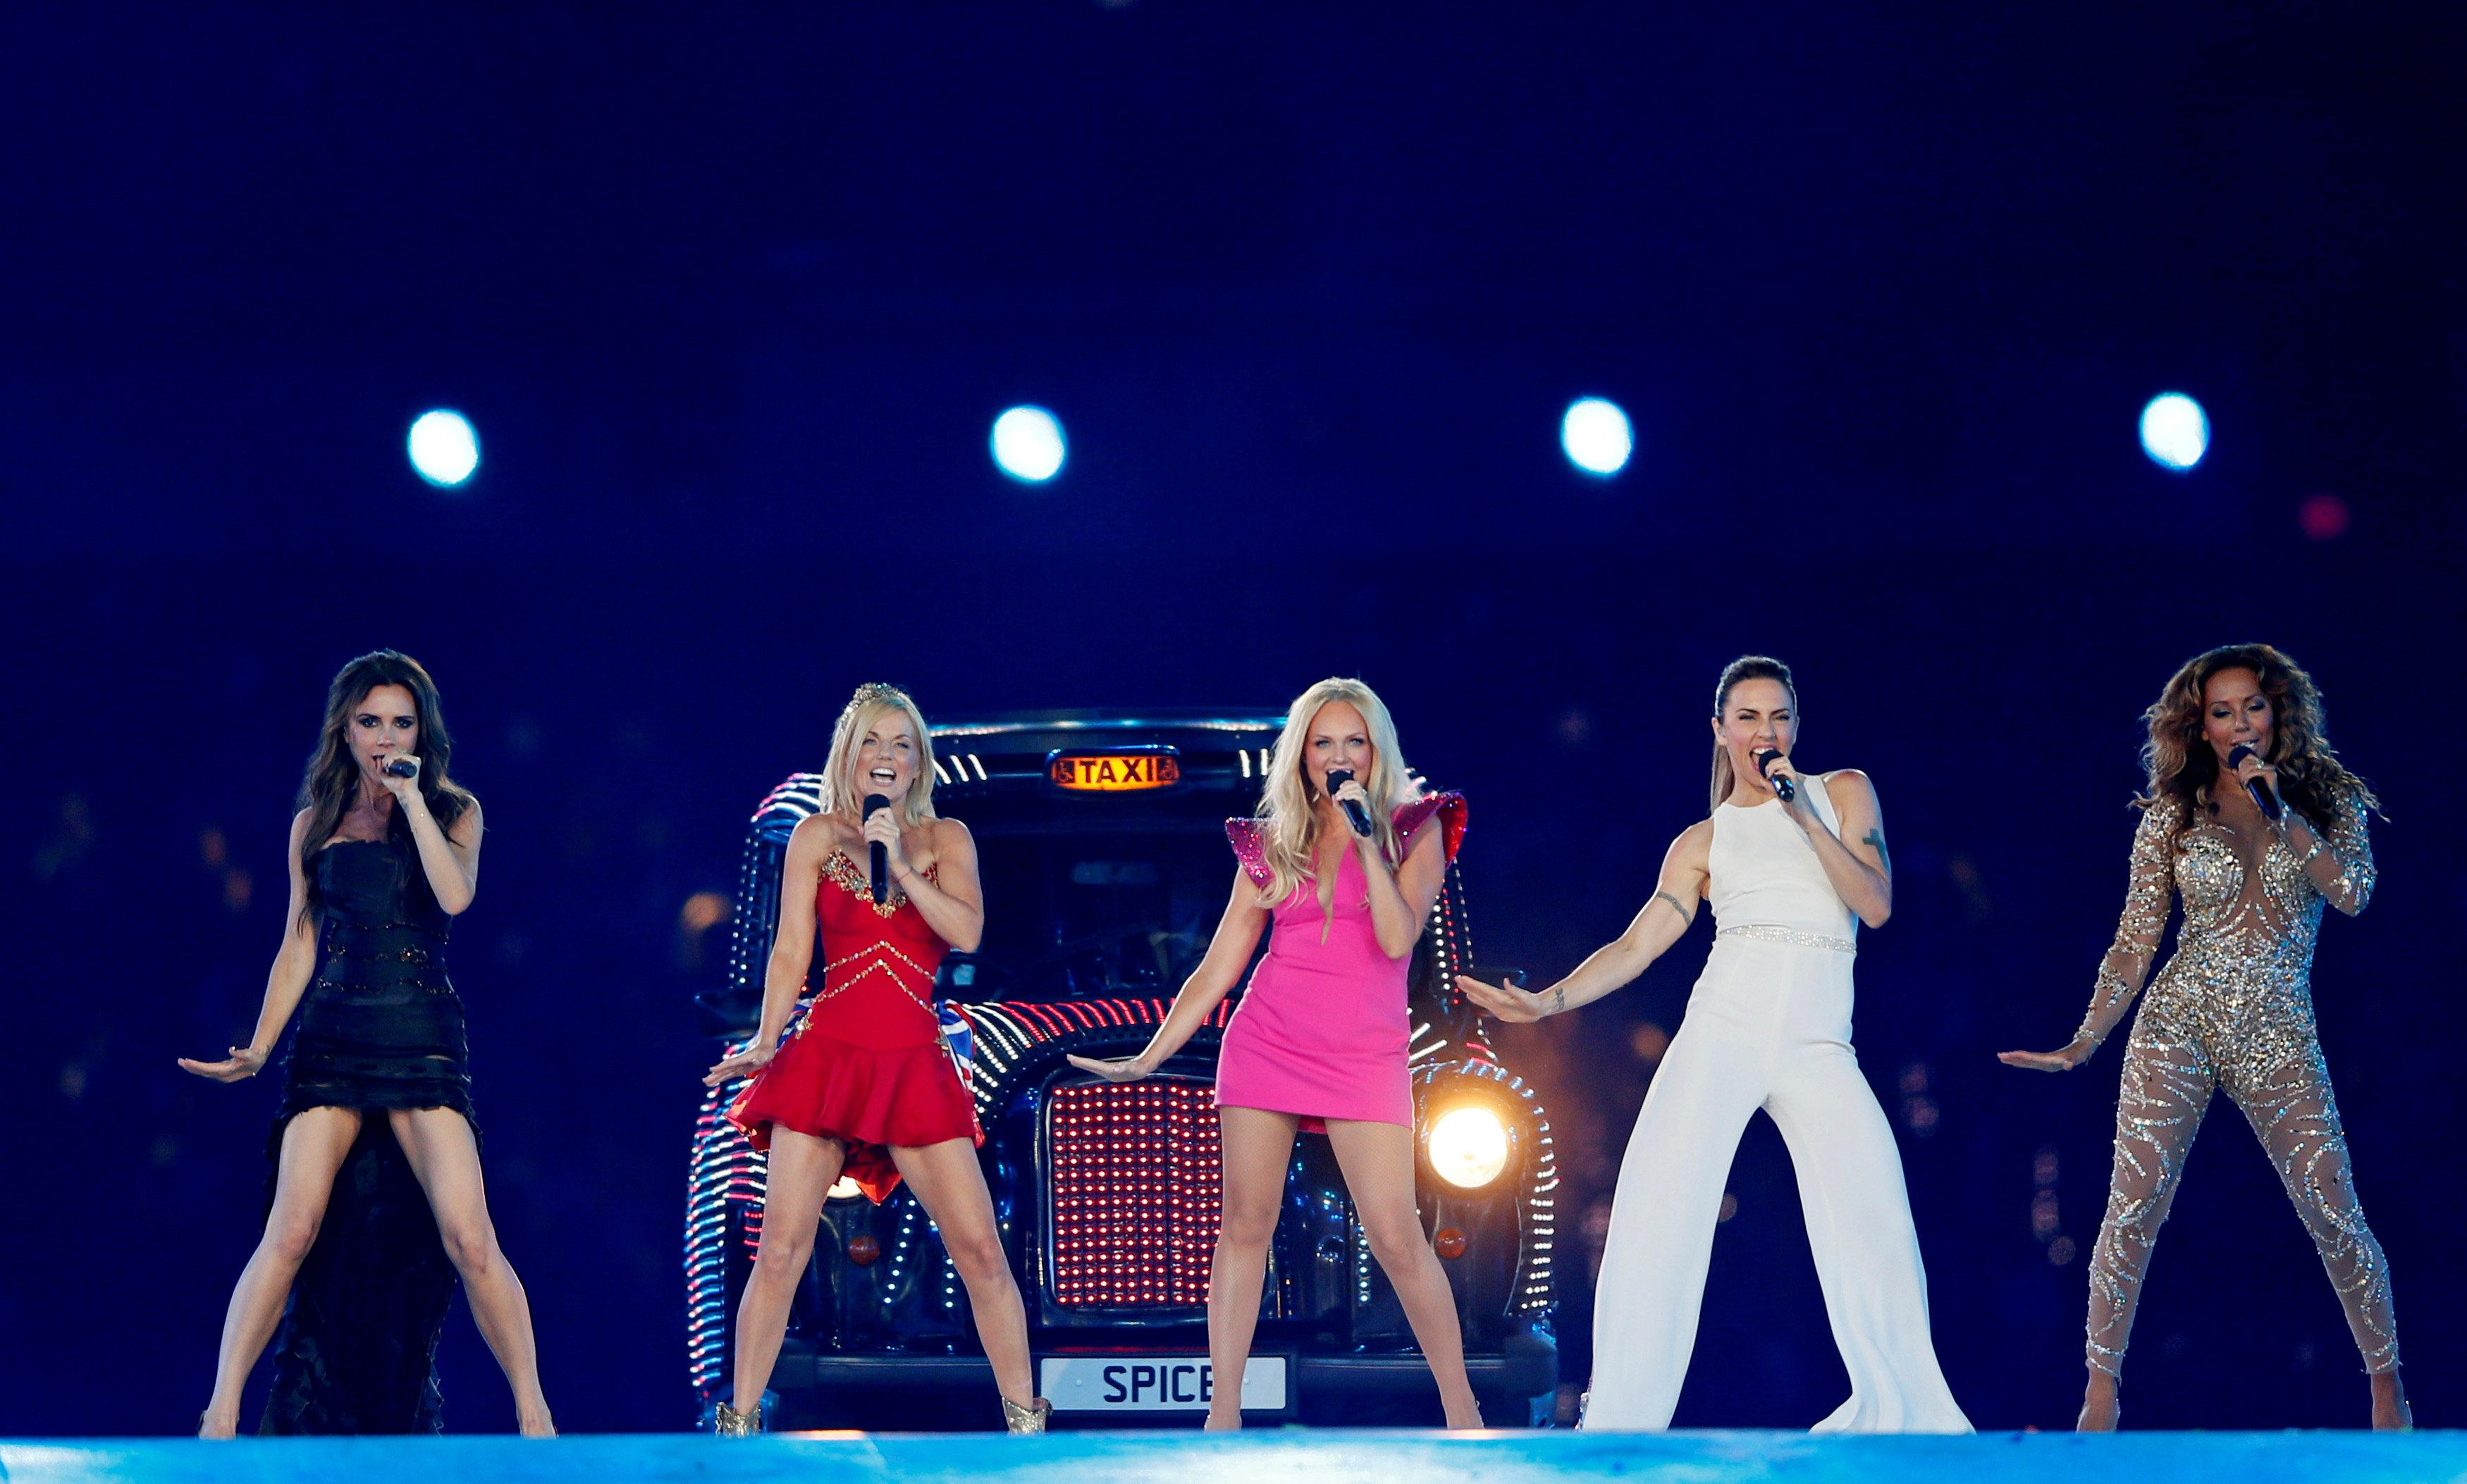 The Spice Girls perform during the closing ceremony of the London 2012 Olympic Games at the Olympic Stadium, August 12, 2012. Stefan Wermuth